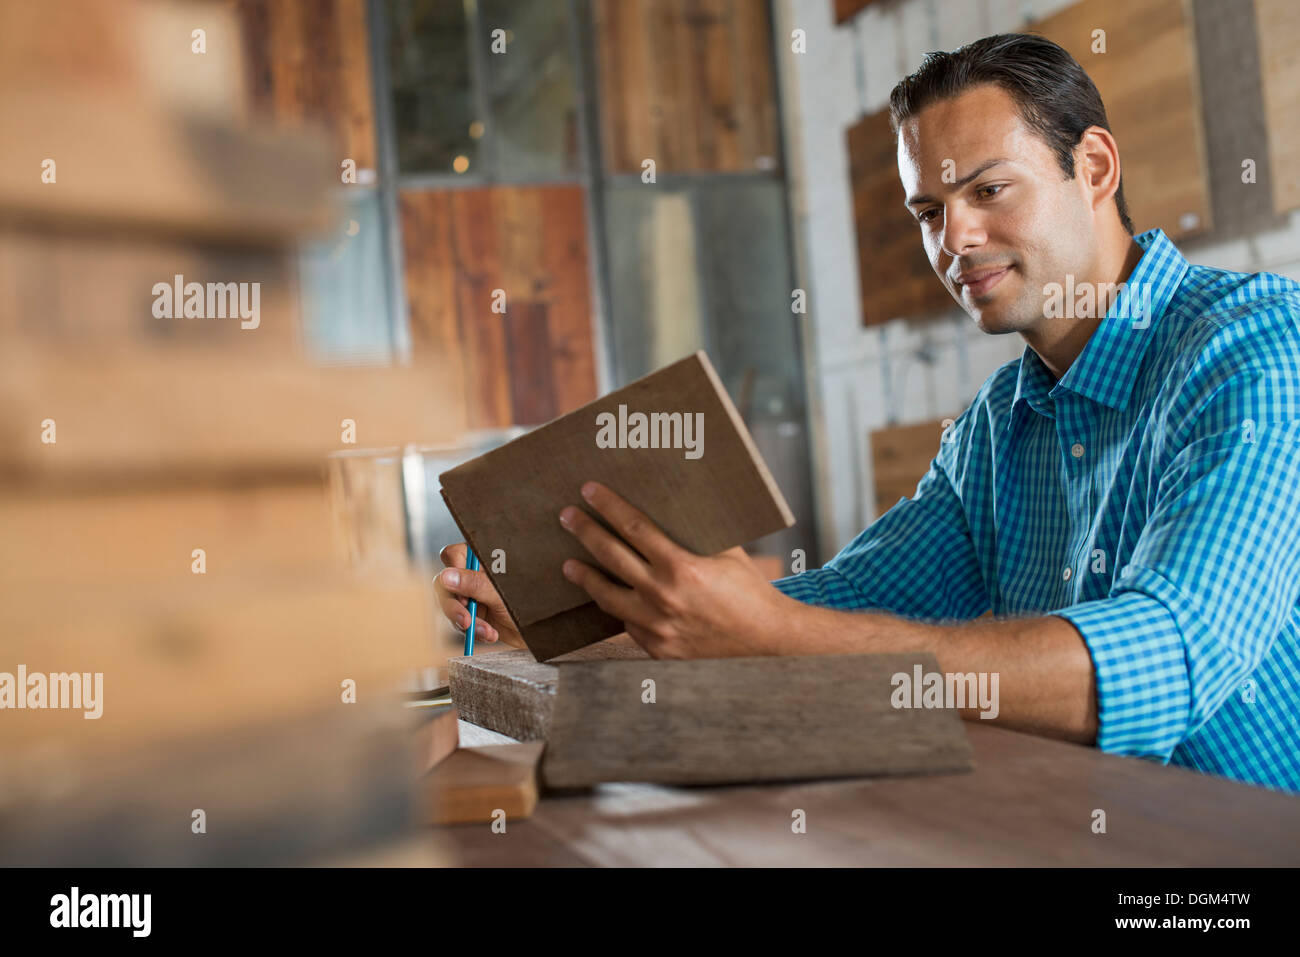 A young man in a workshop examining a recycled wood sample. - Stock Image